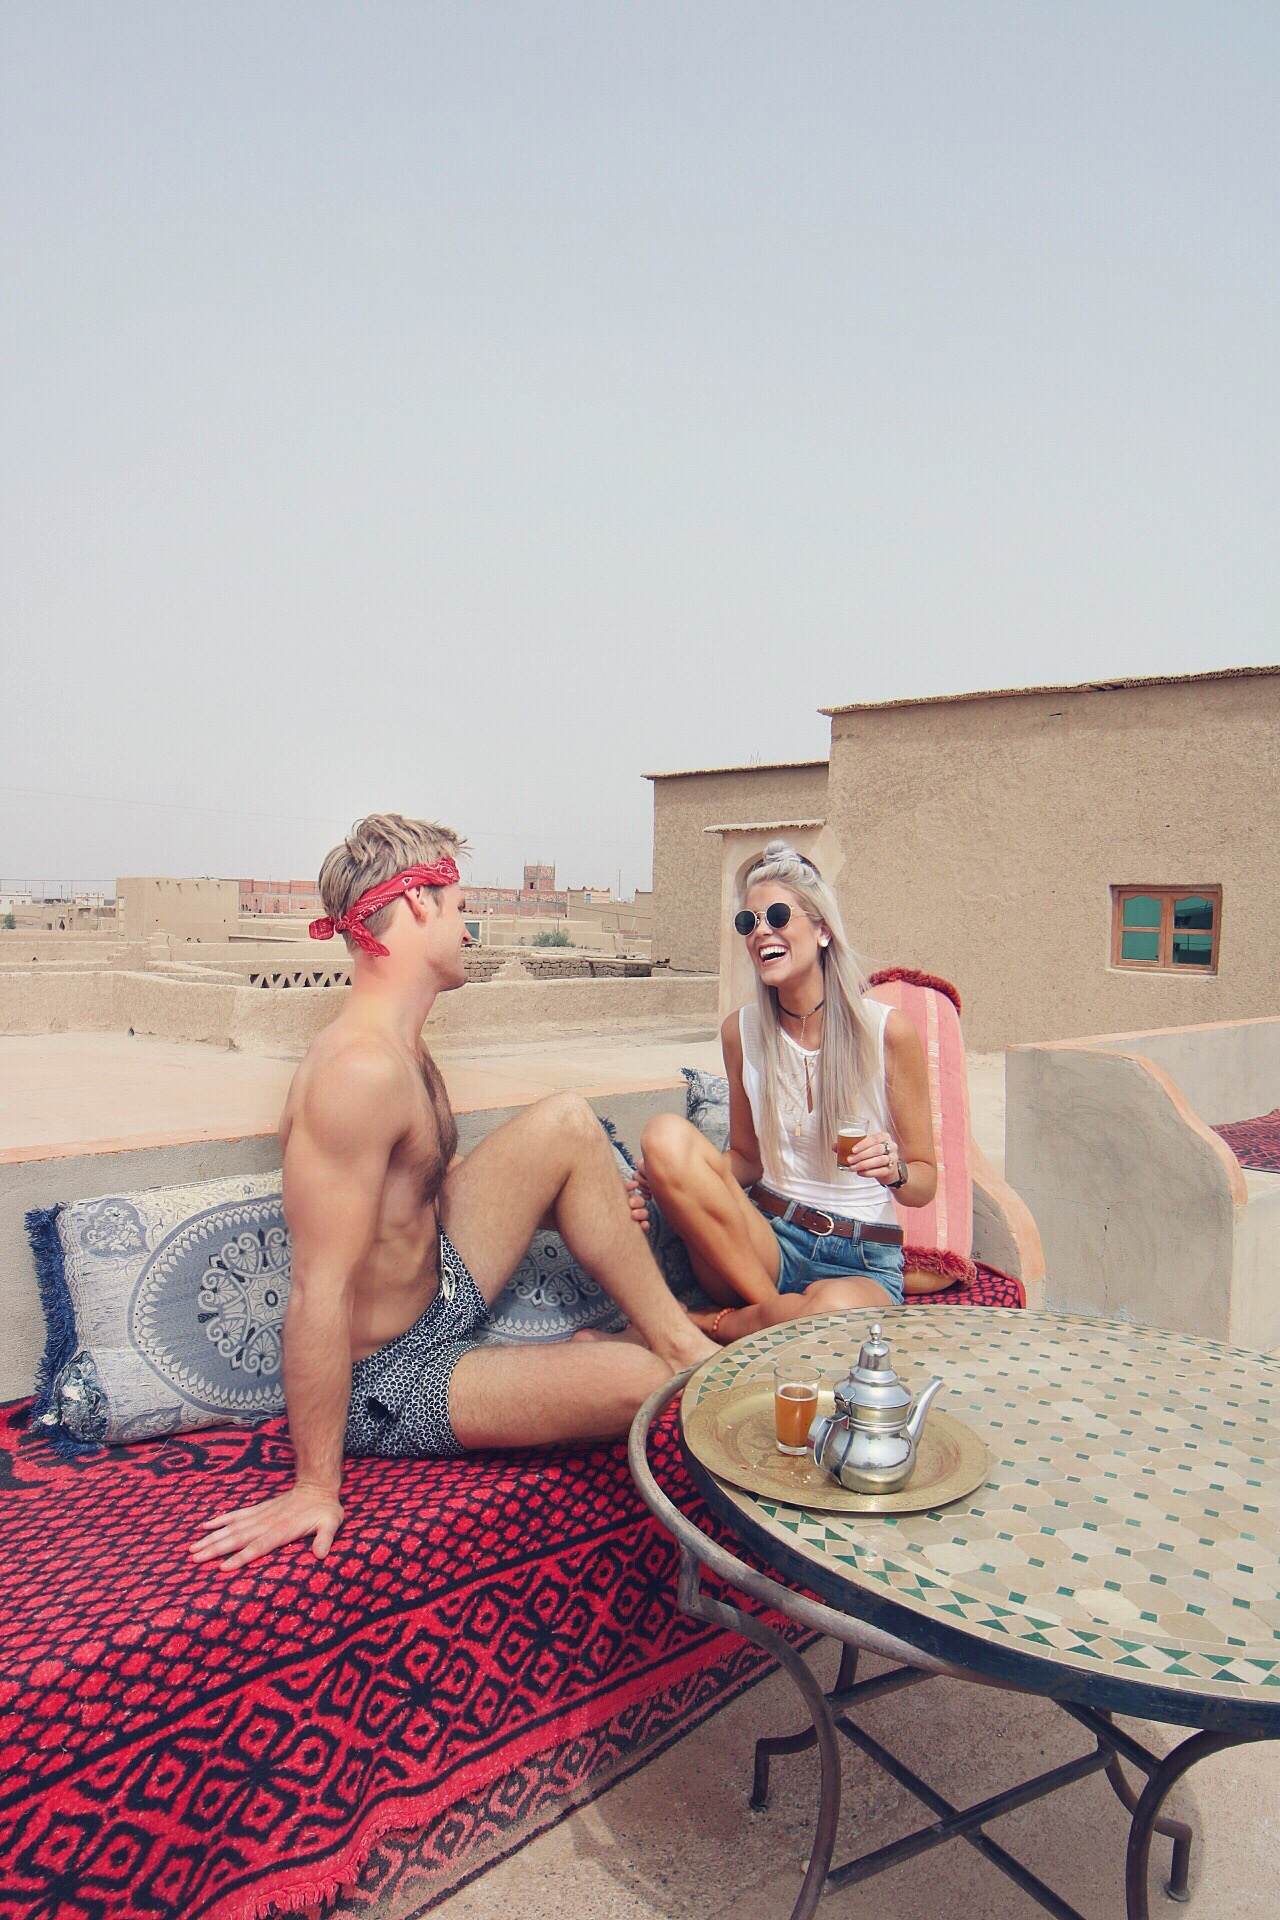 @asasteinars's cover photo for 'Our first days in Morocco - From Ice To Spice'